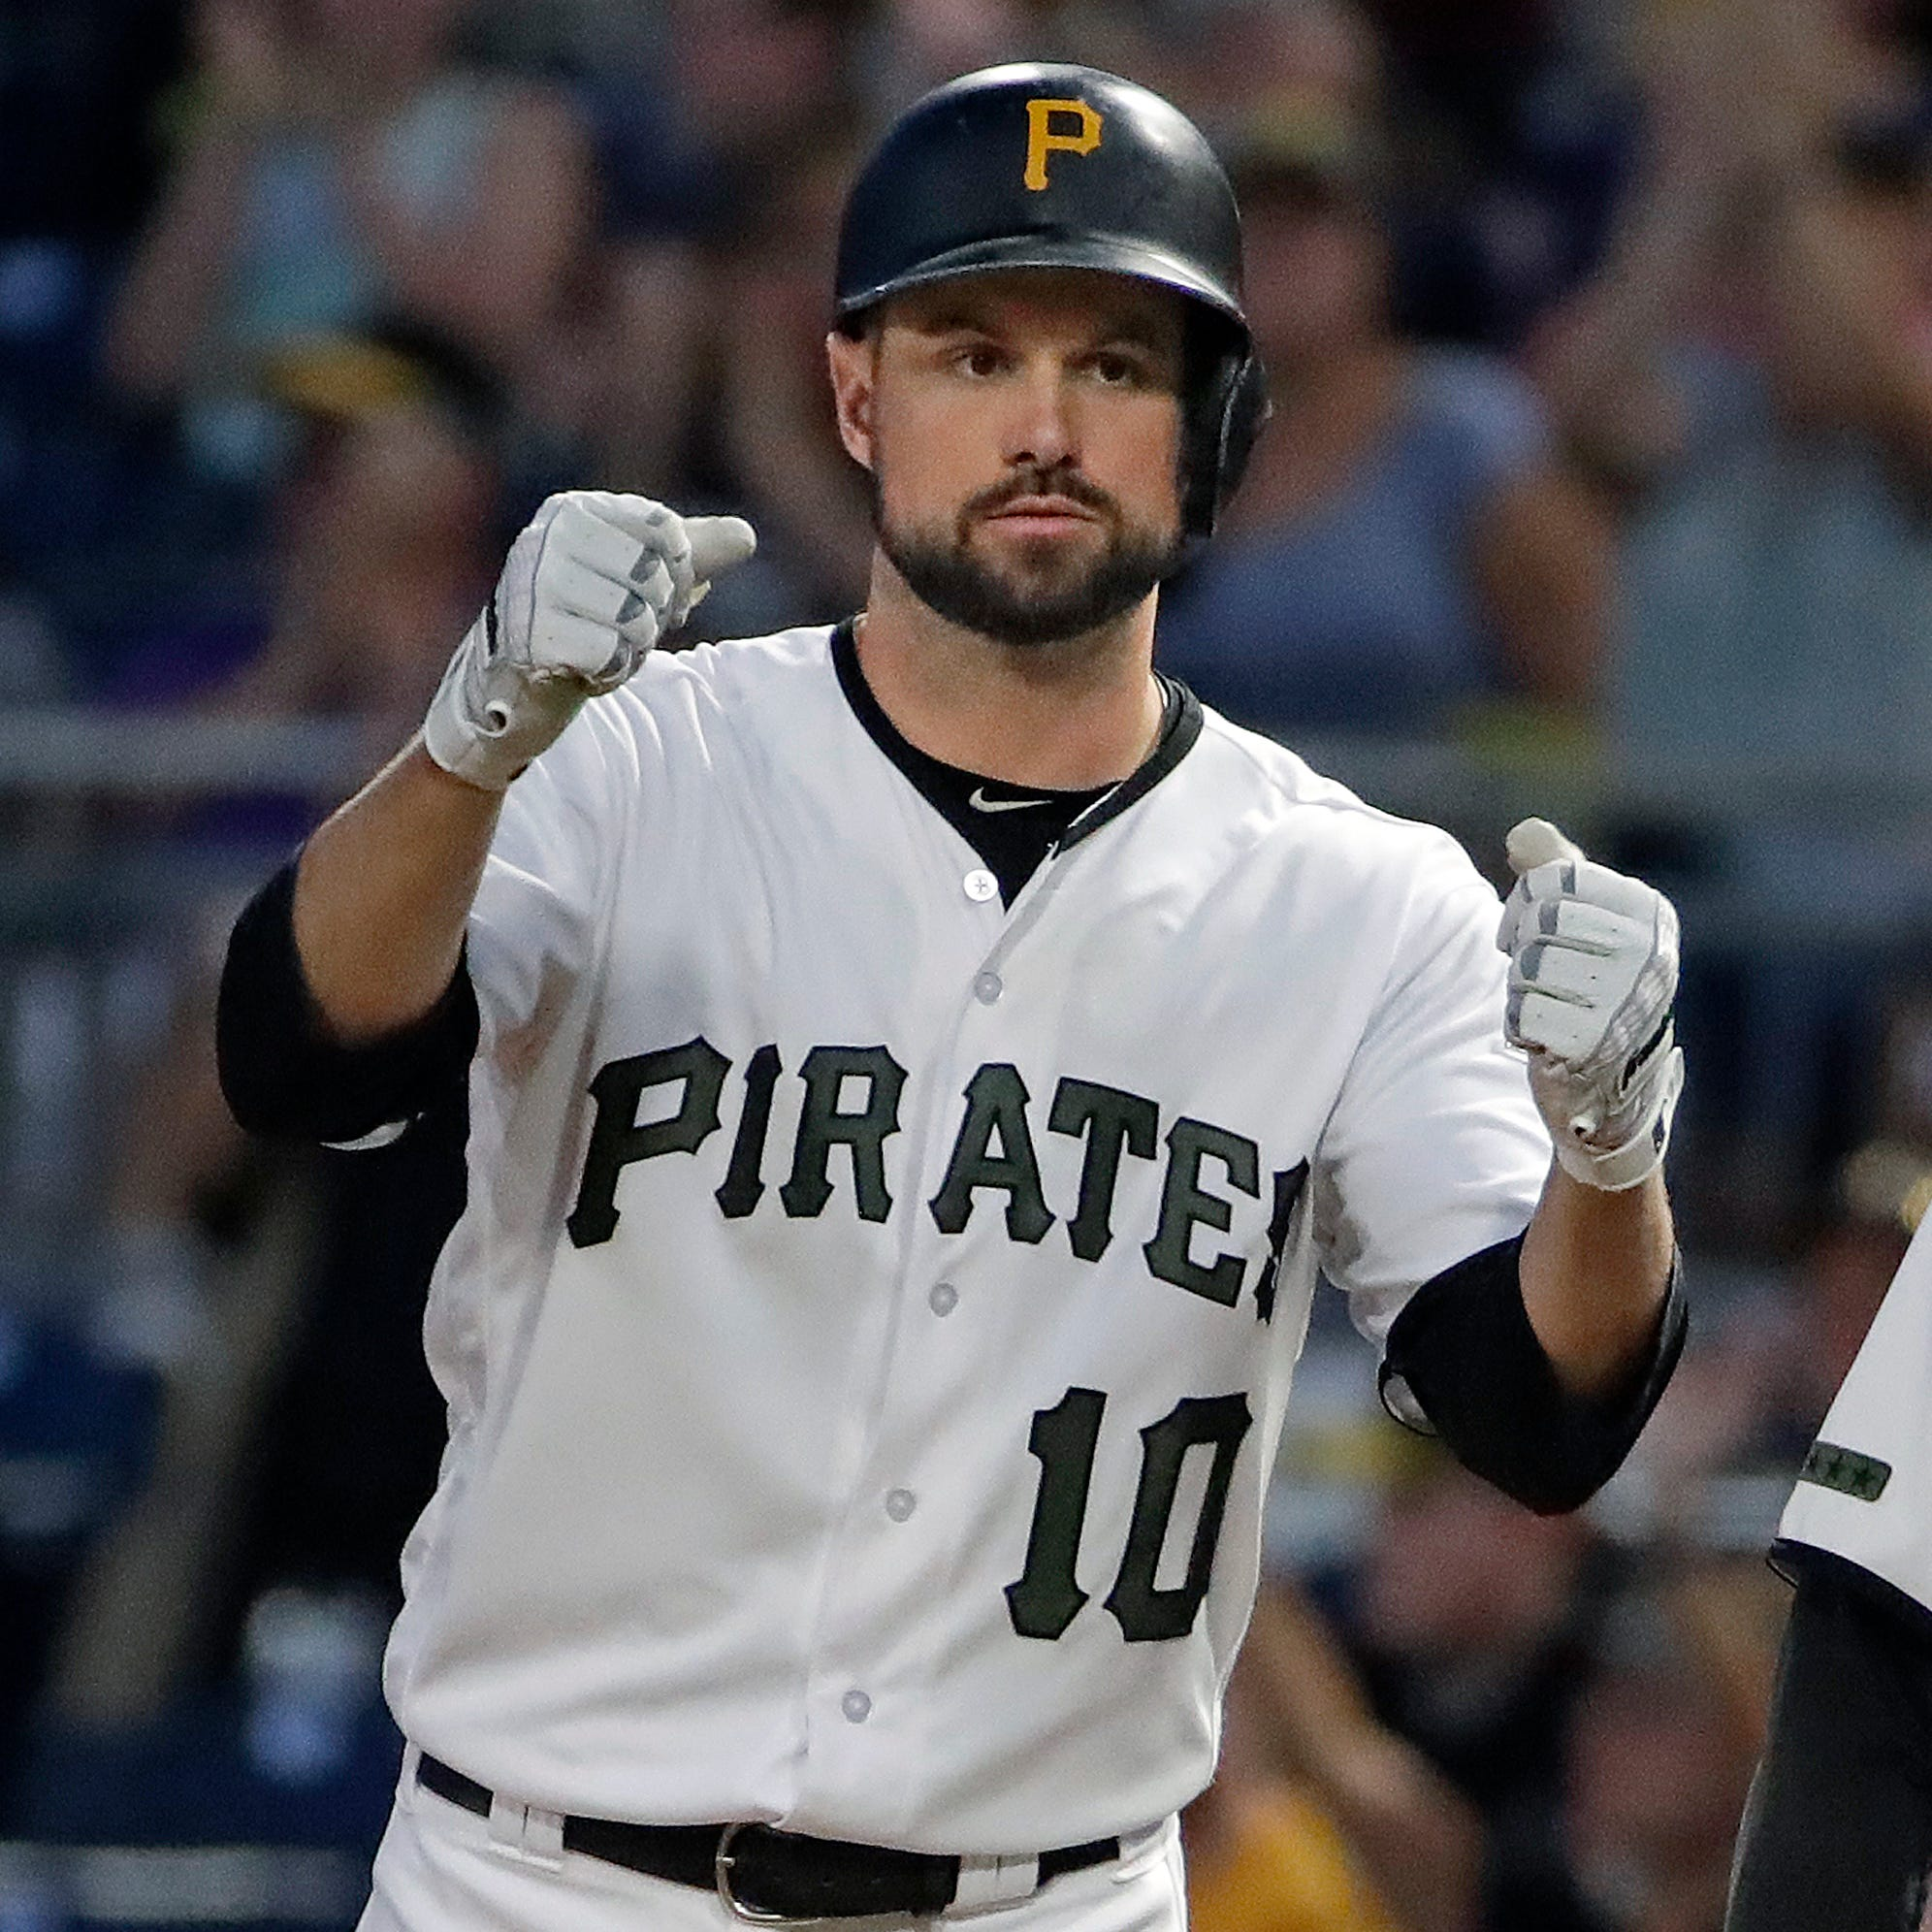 Tigers closing in on a one-year deal with shortstop Jordy Mercer